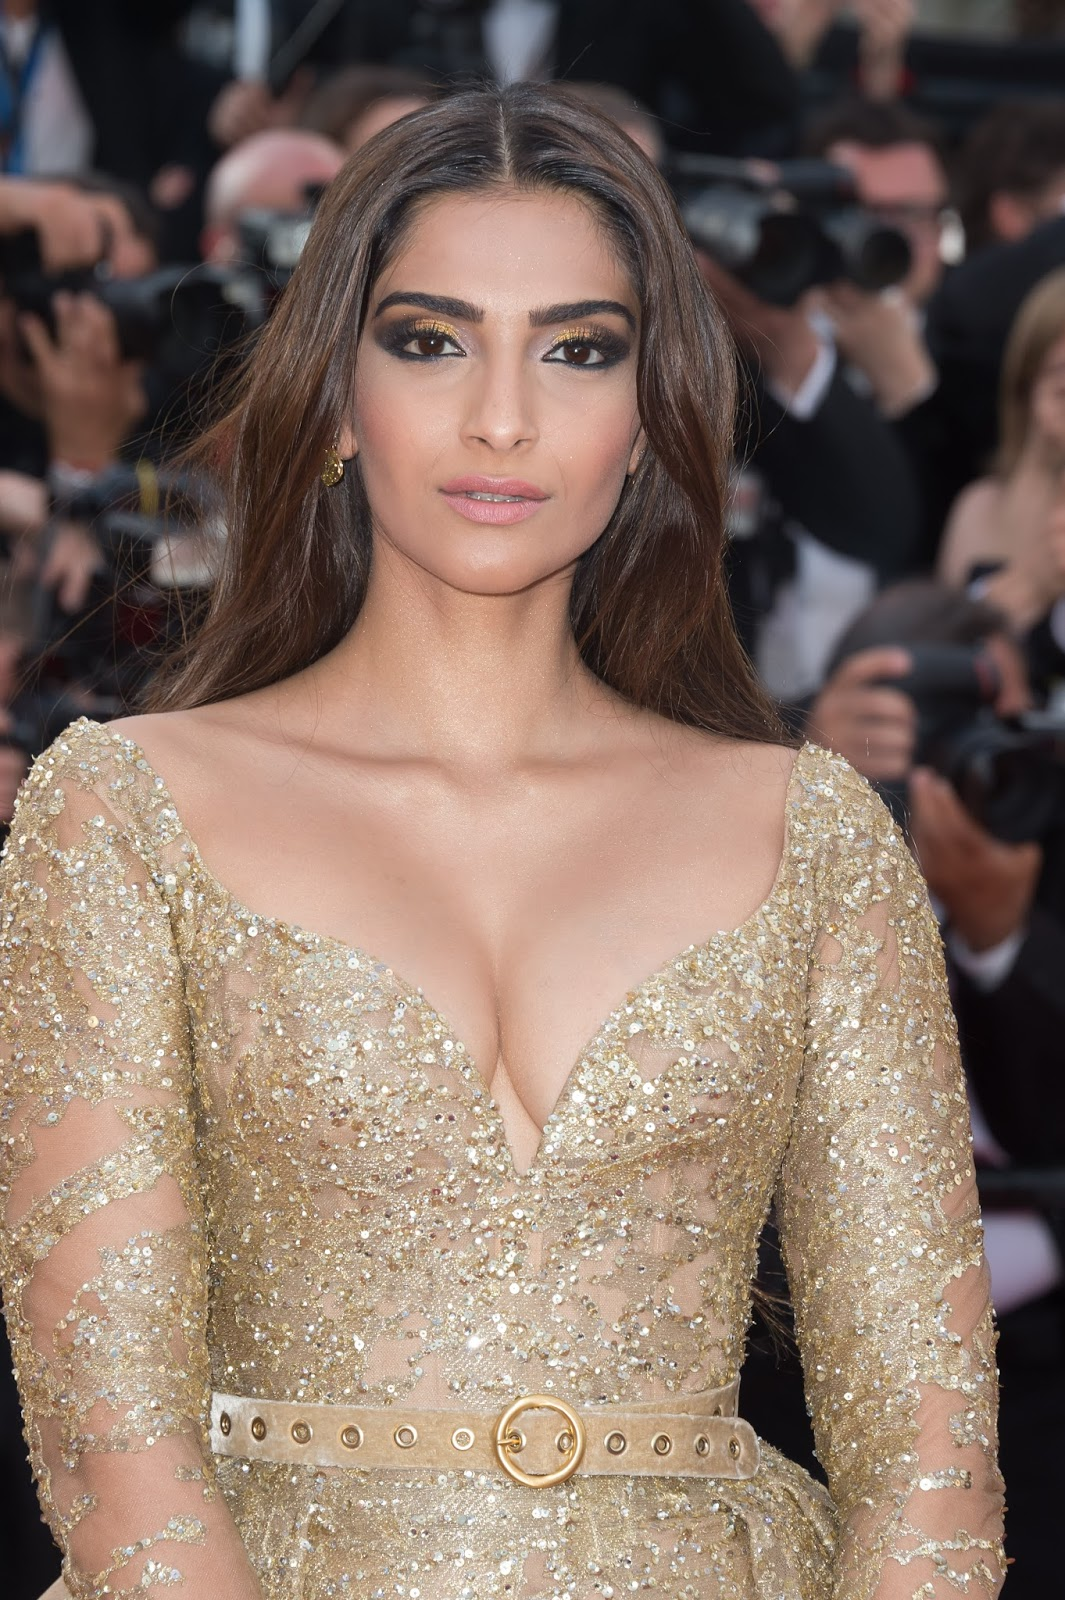 Sonam Kapoor Sexiest Cleavage Show In Elie Saab Couture At -7207